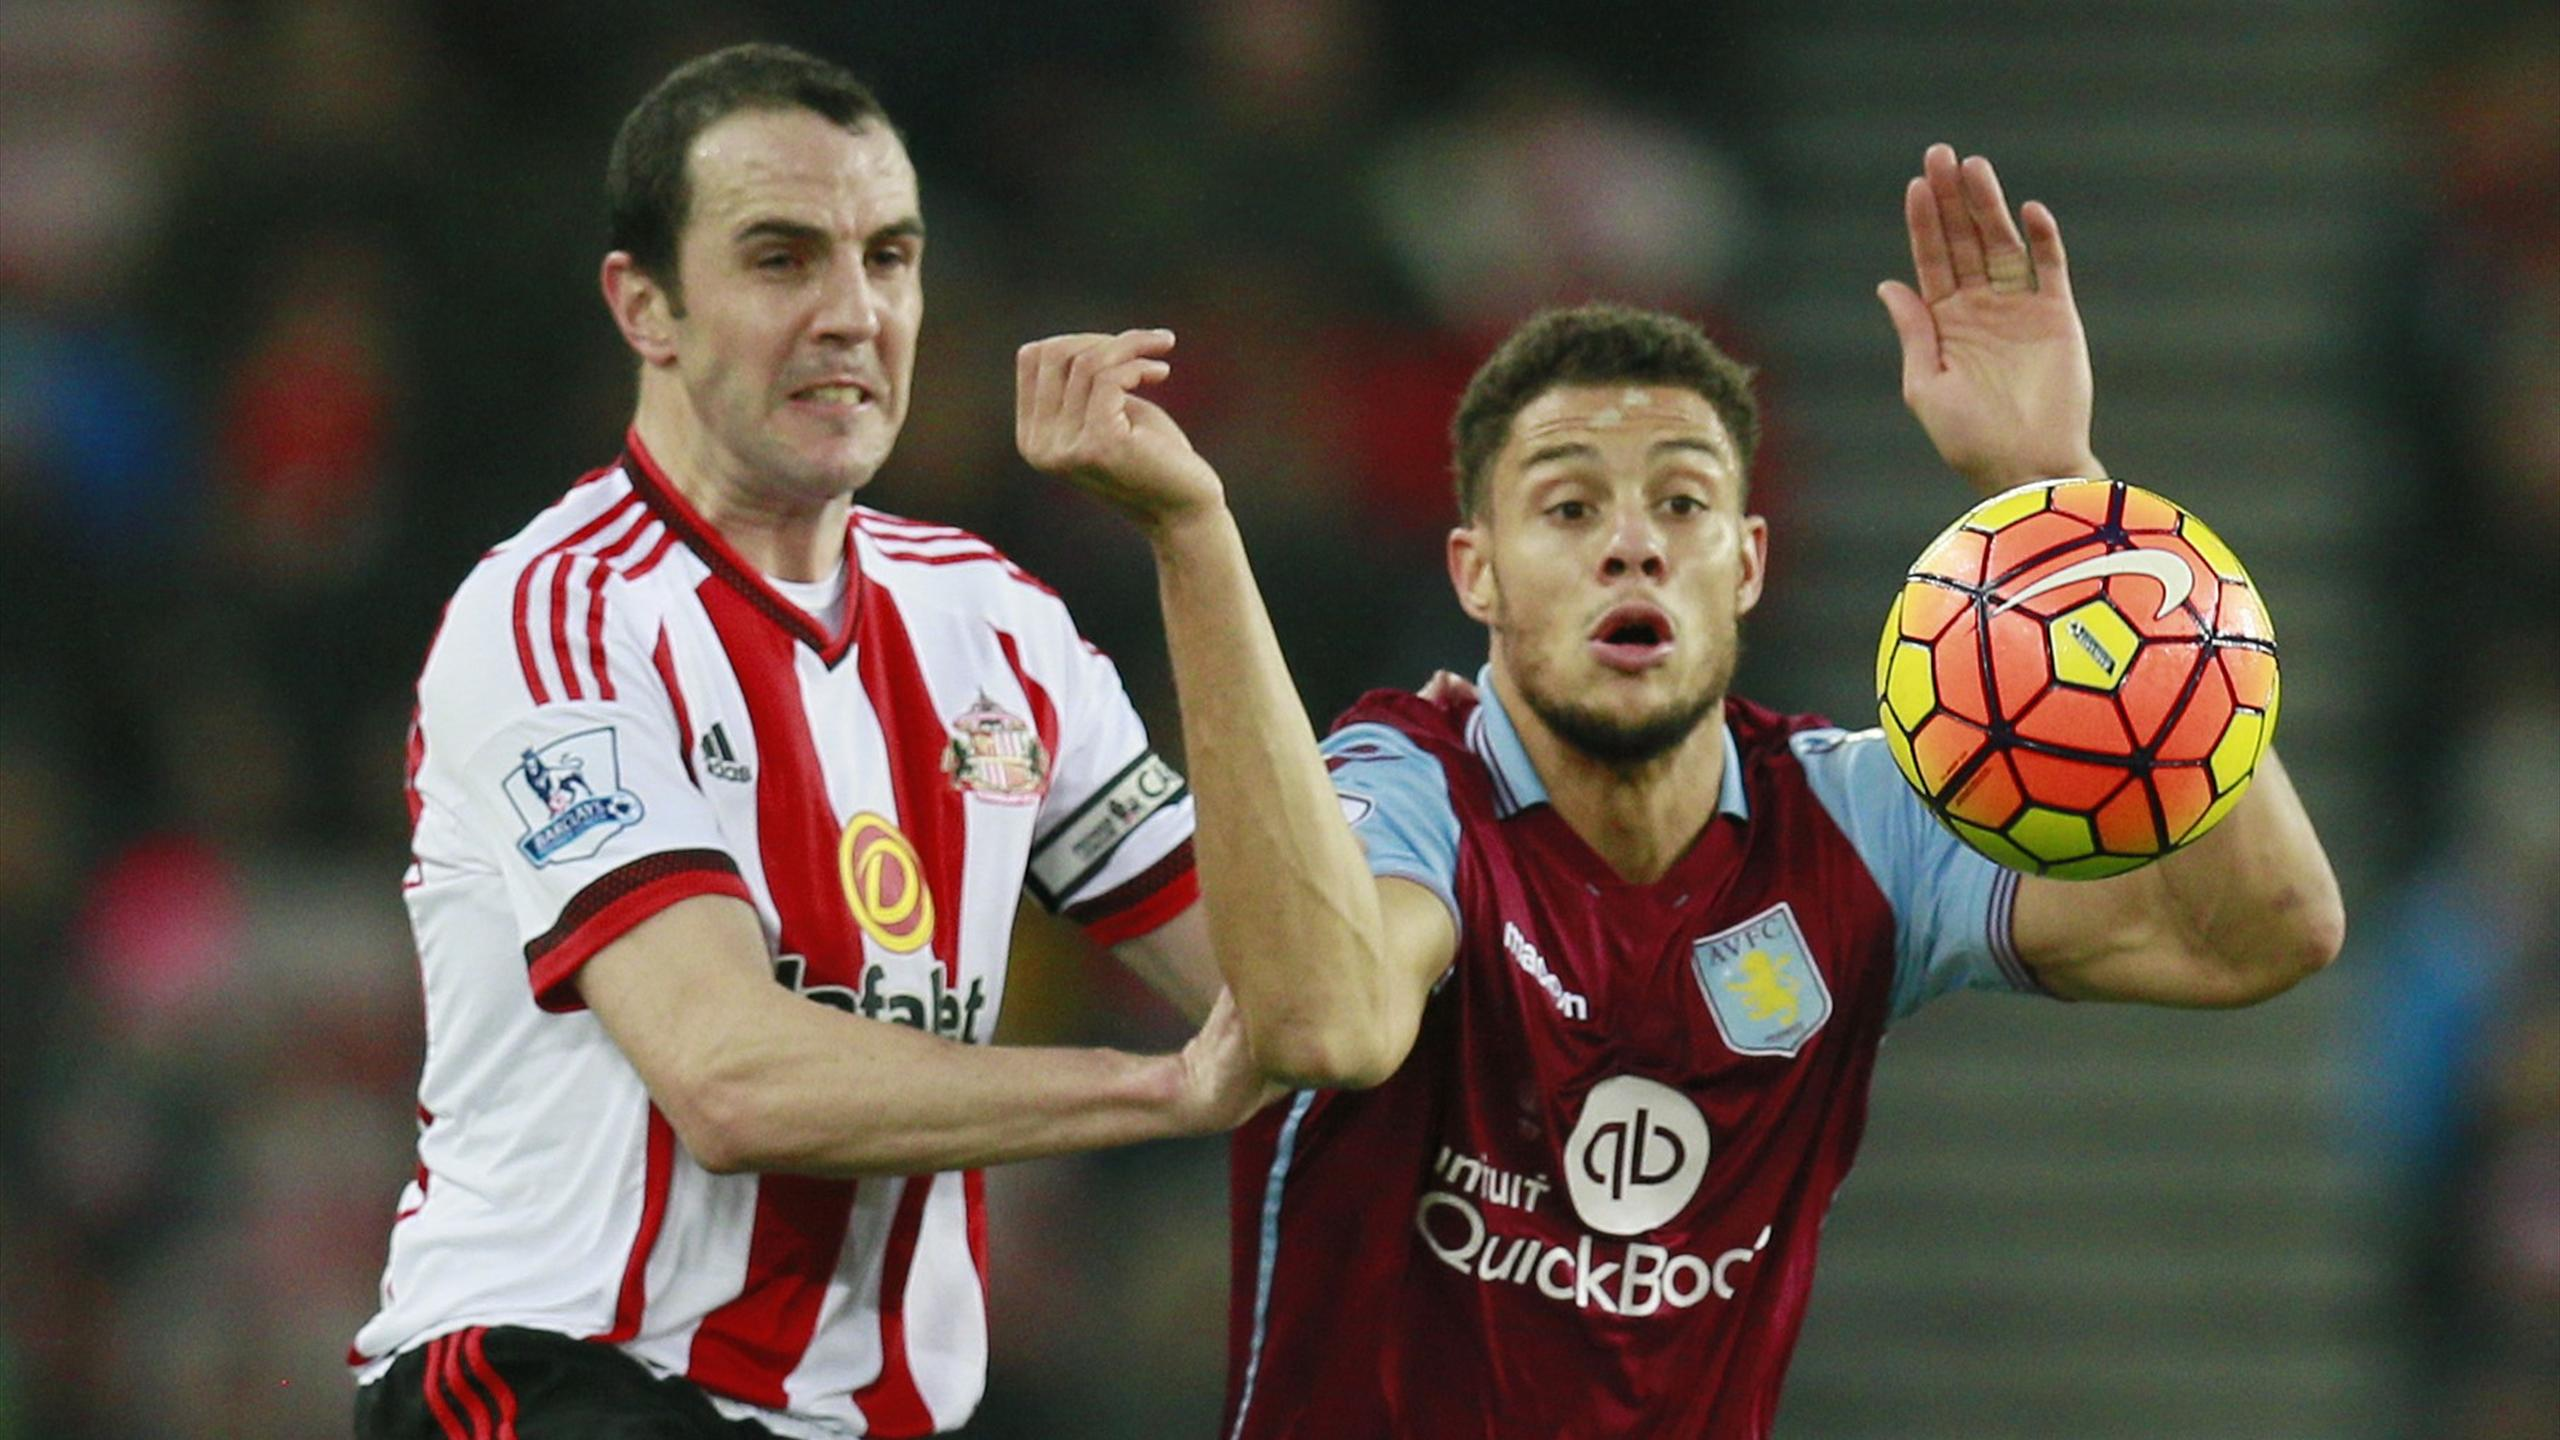 Aston Villa's Rudy Gestede in action with Sunderland's John O'Shea